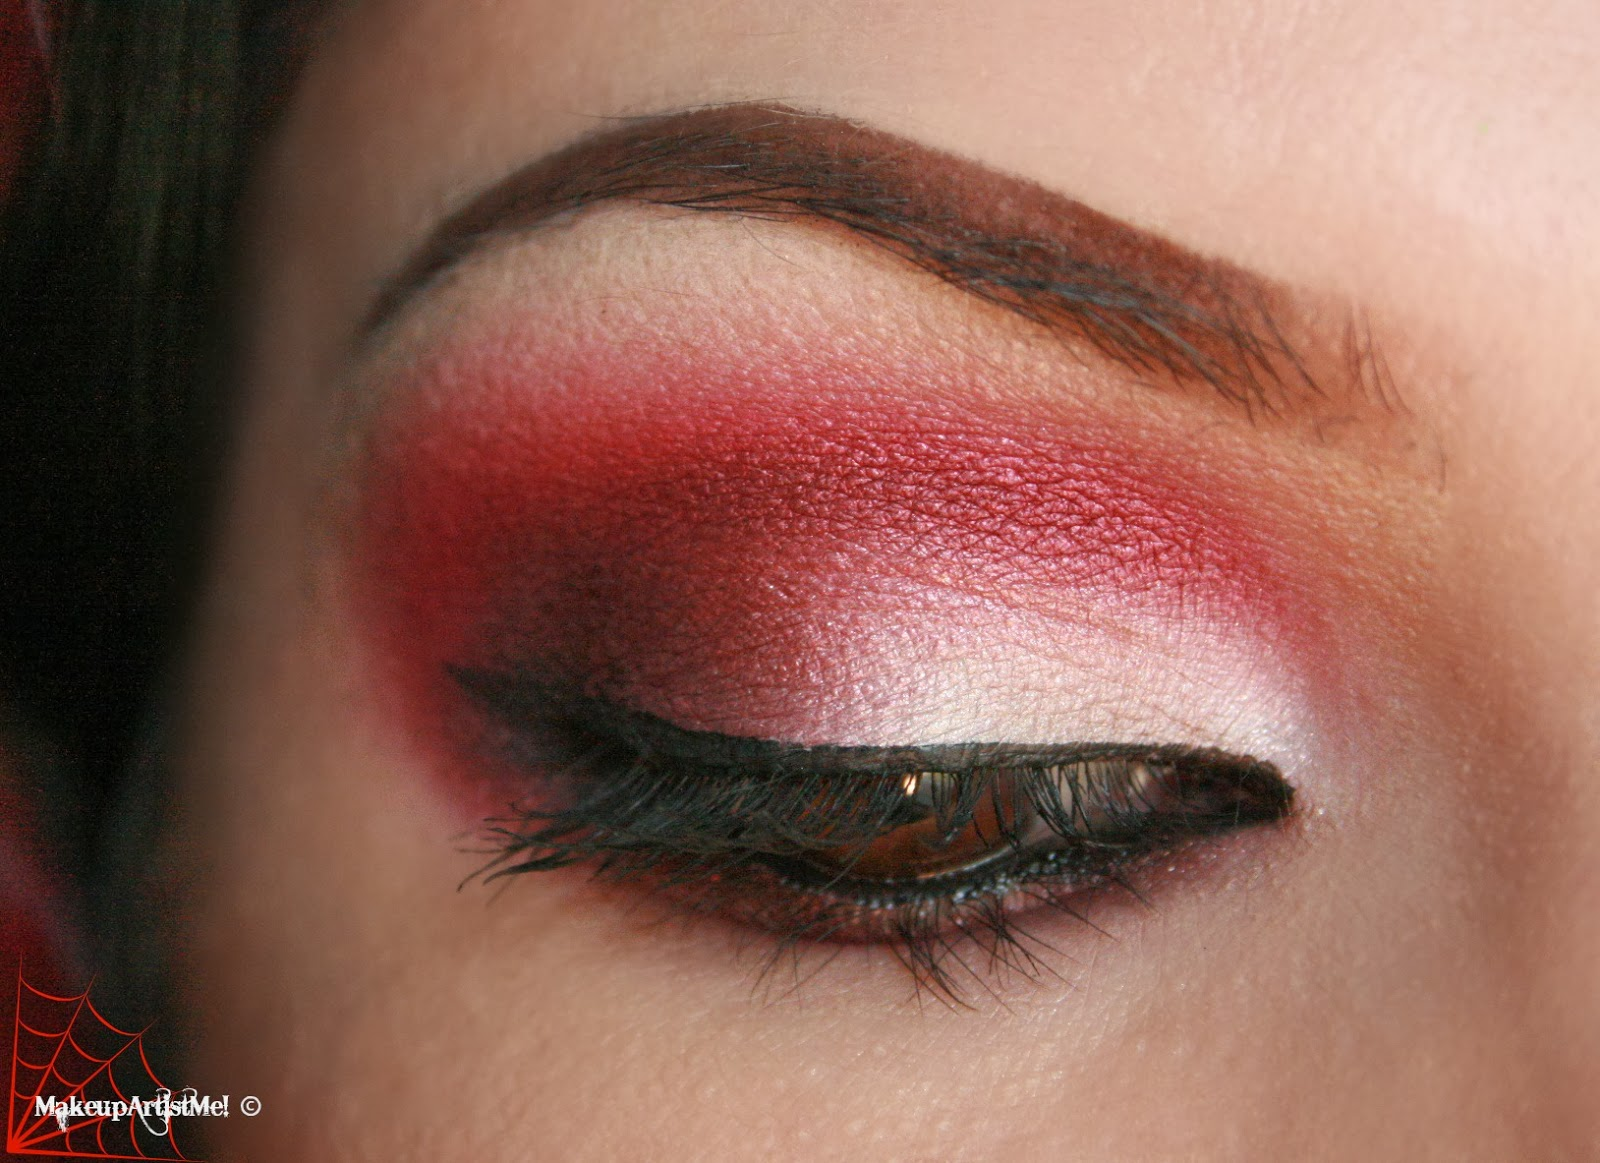 Make-up Artist Me!: Daring! Red eyeshadow makeup tutorial